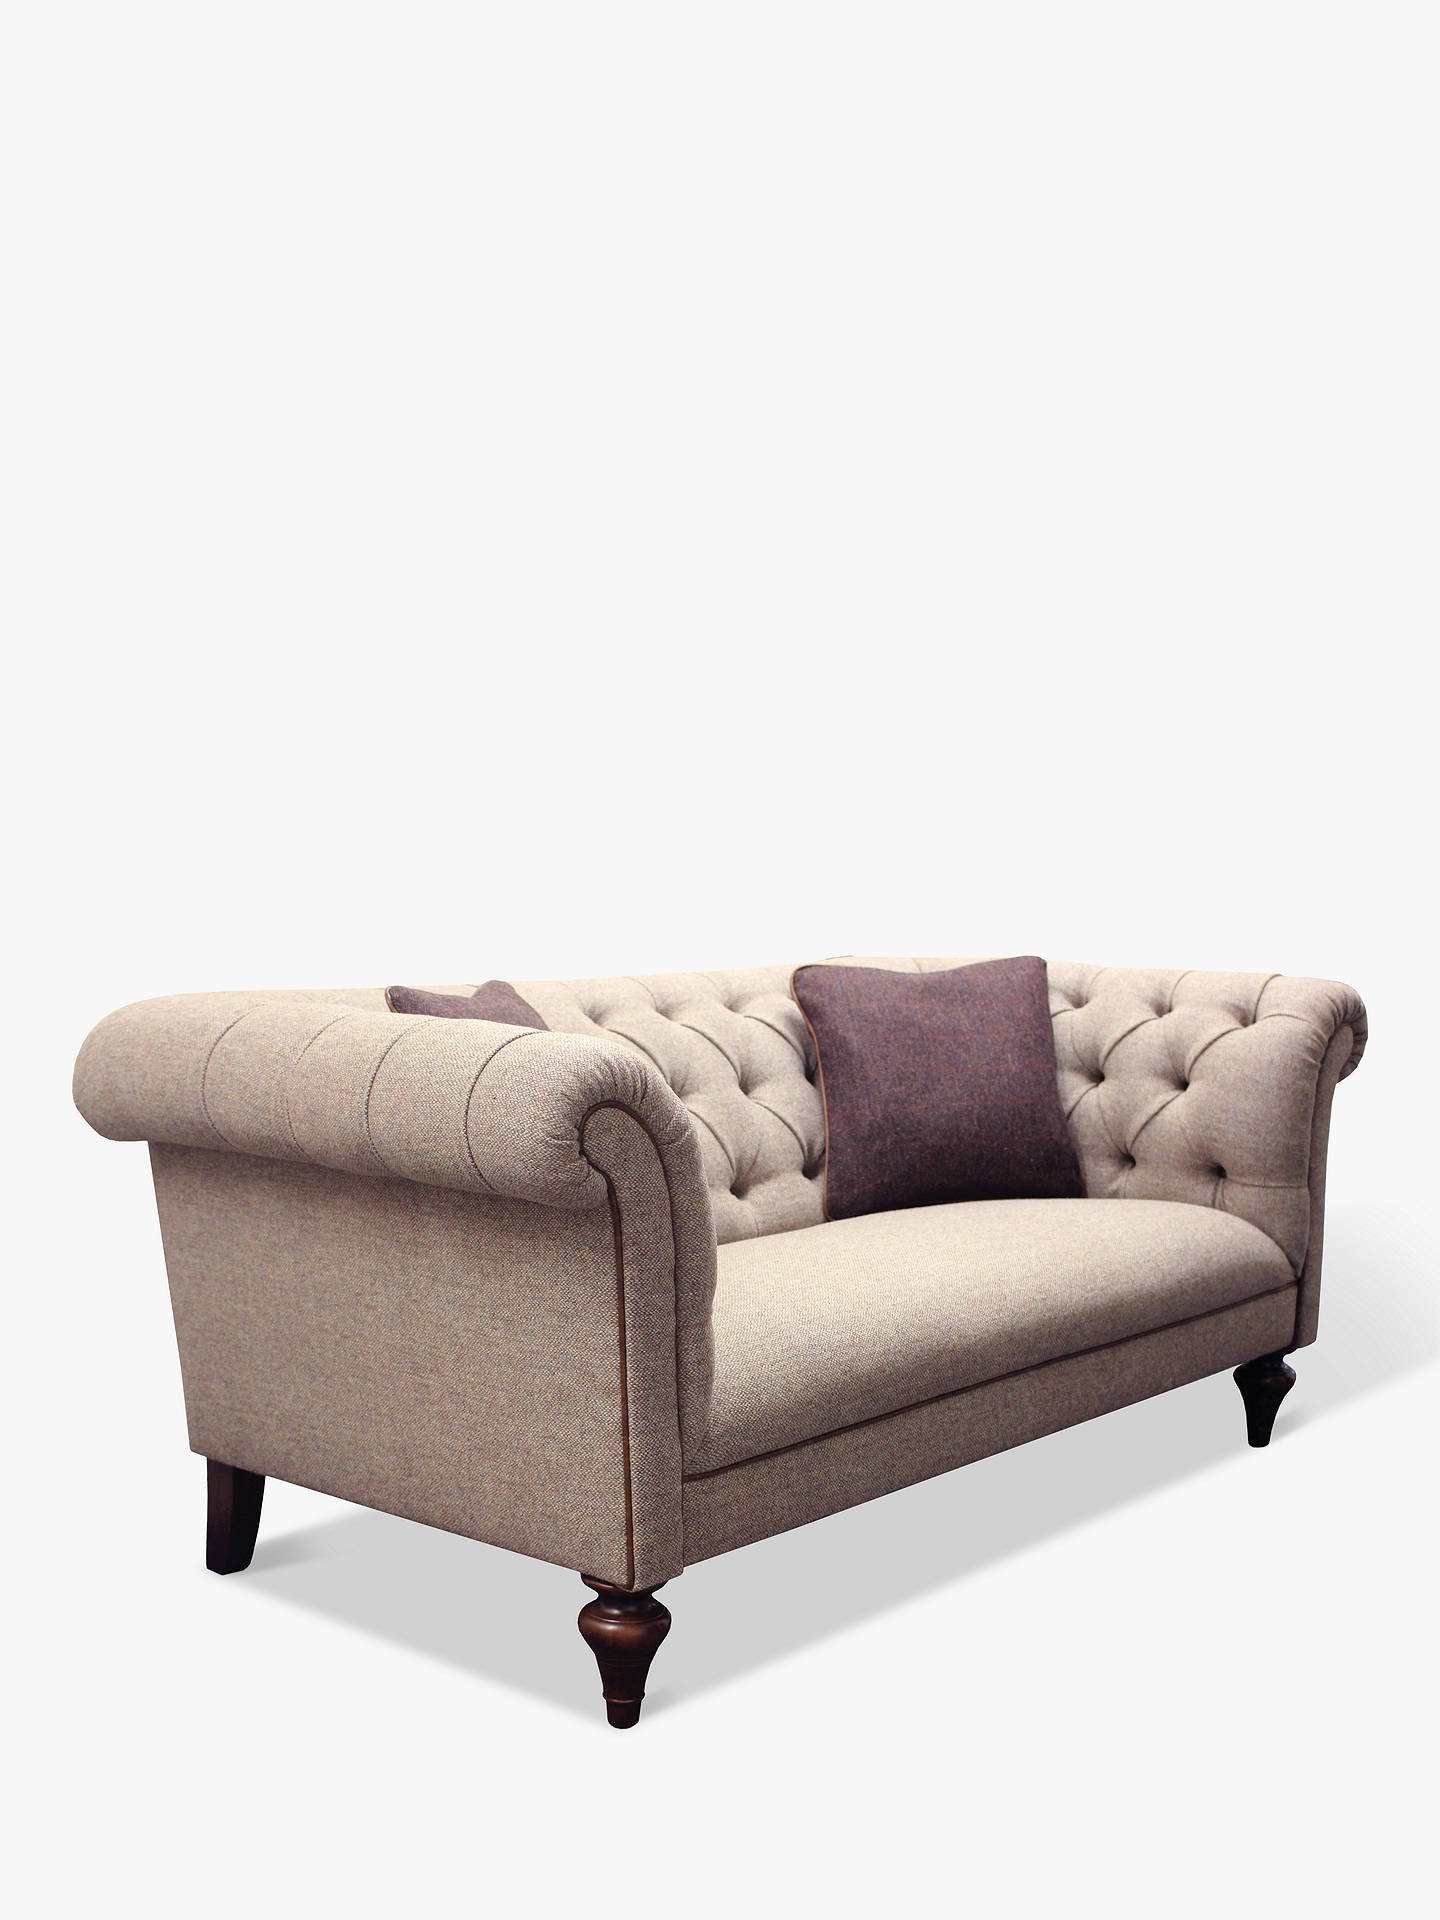 Tetrad Gleneagles Medium 2 Seater Sofa Harris Tweed Heather With Brompton Tan Piping Online At